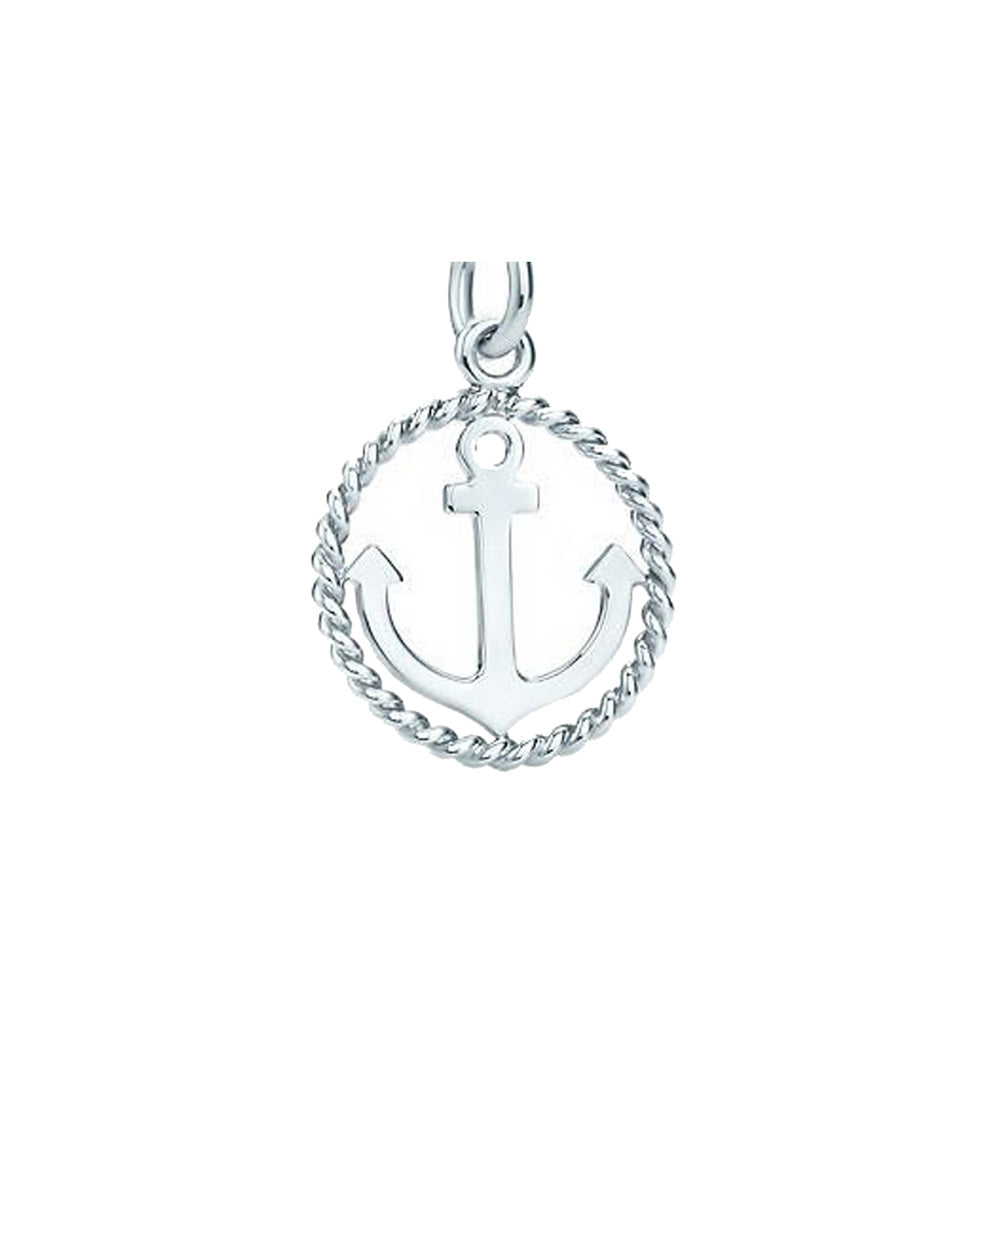 Nautical Anchor Charm in Sterling Silver